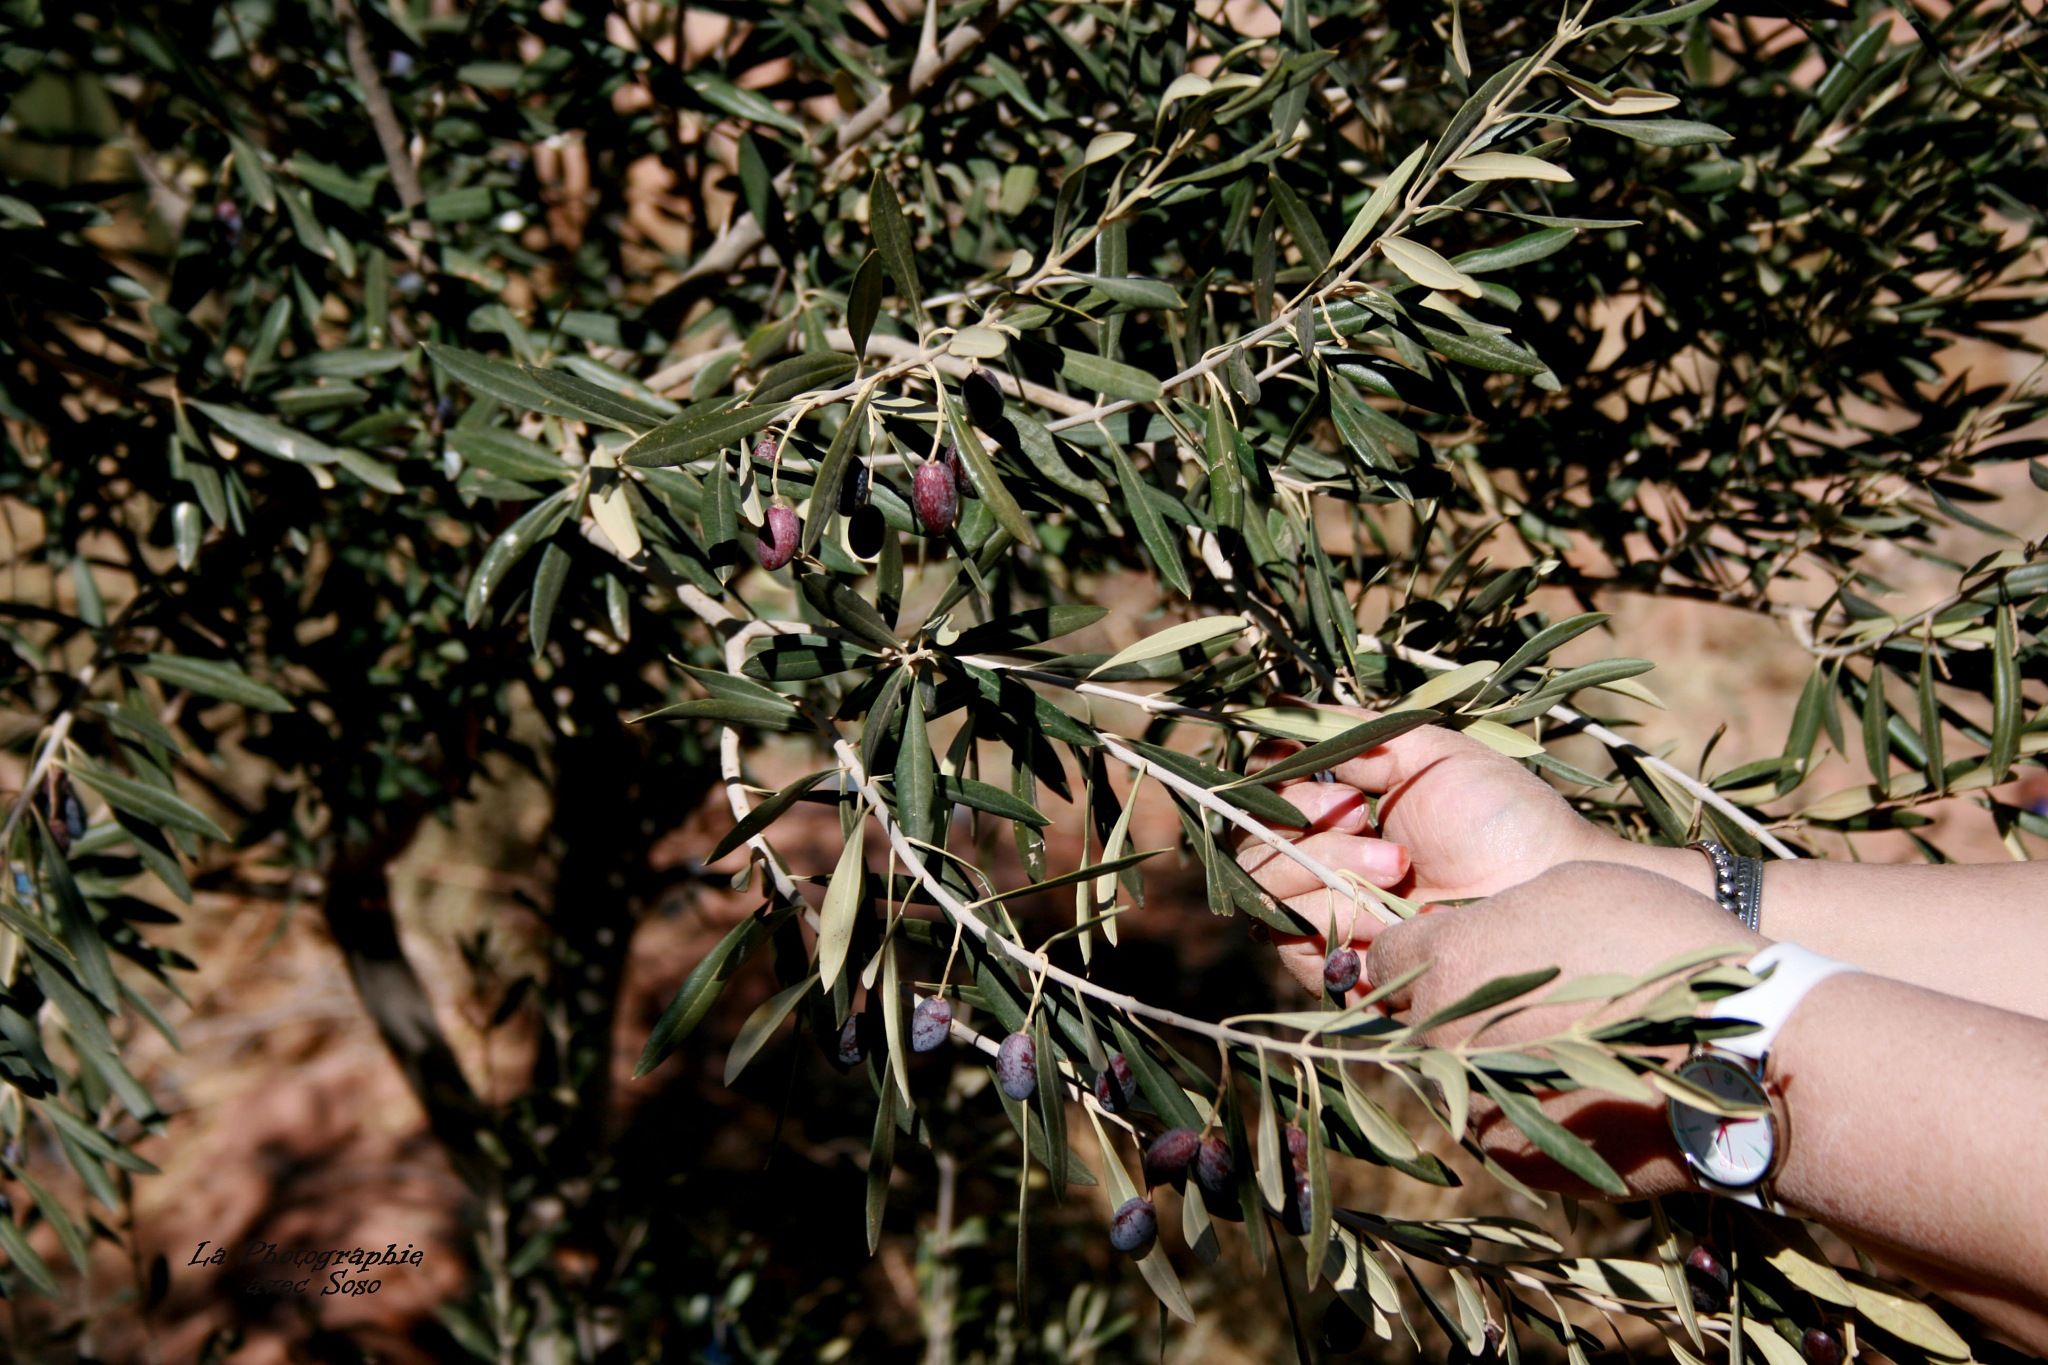 My mother reap the olives ♥ by addar sabah